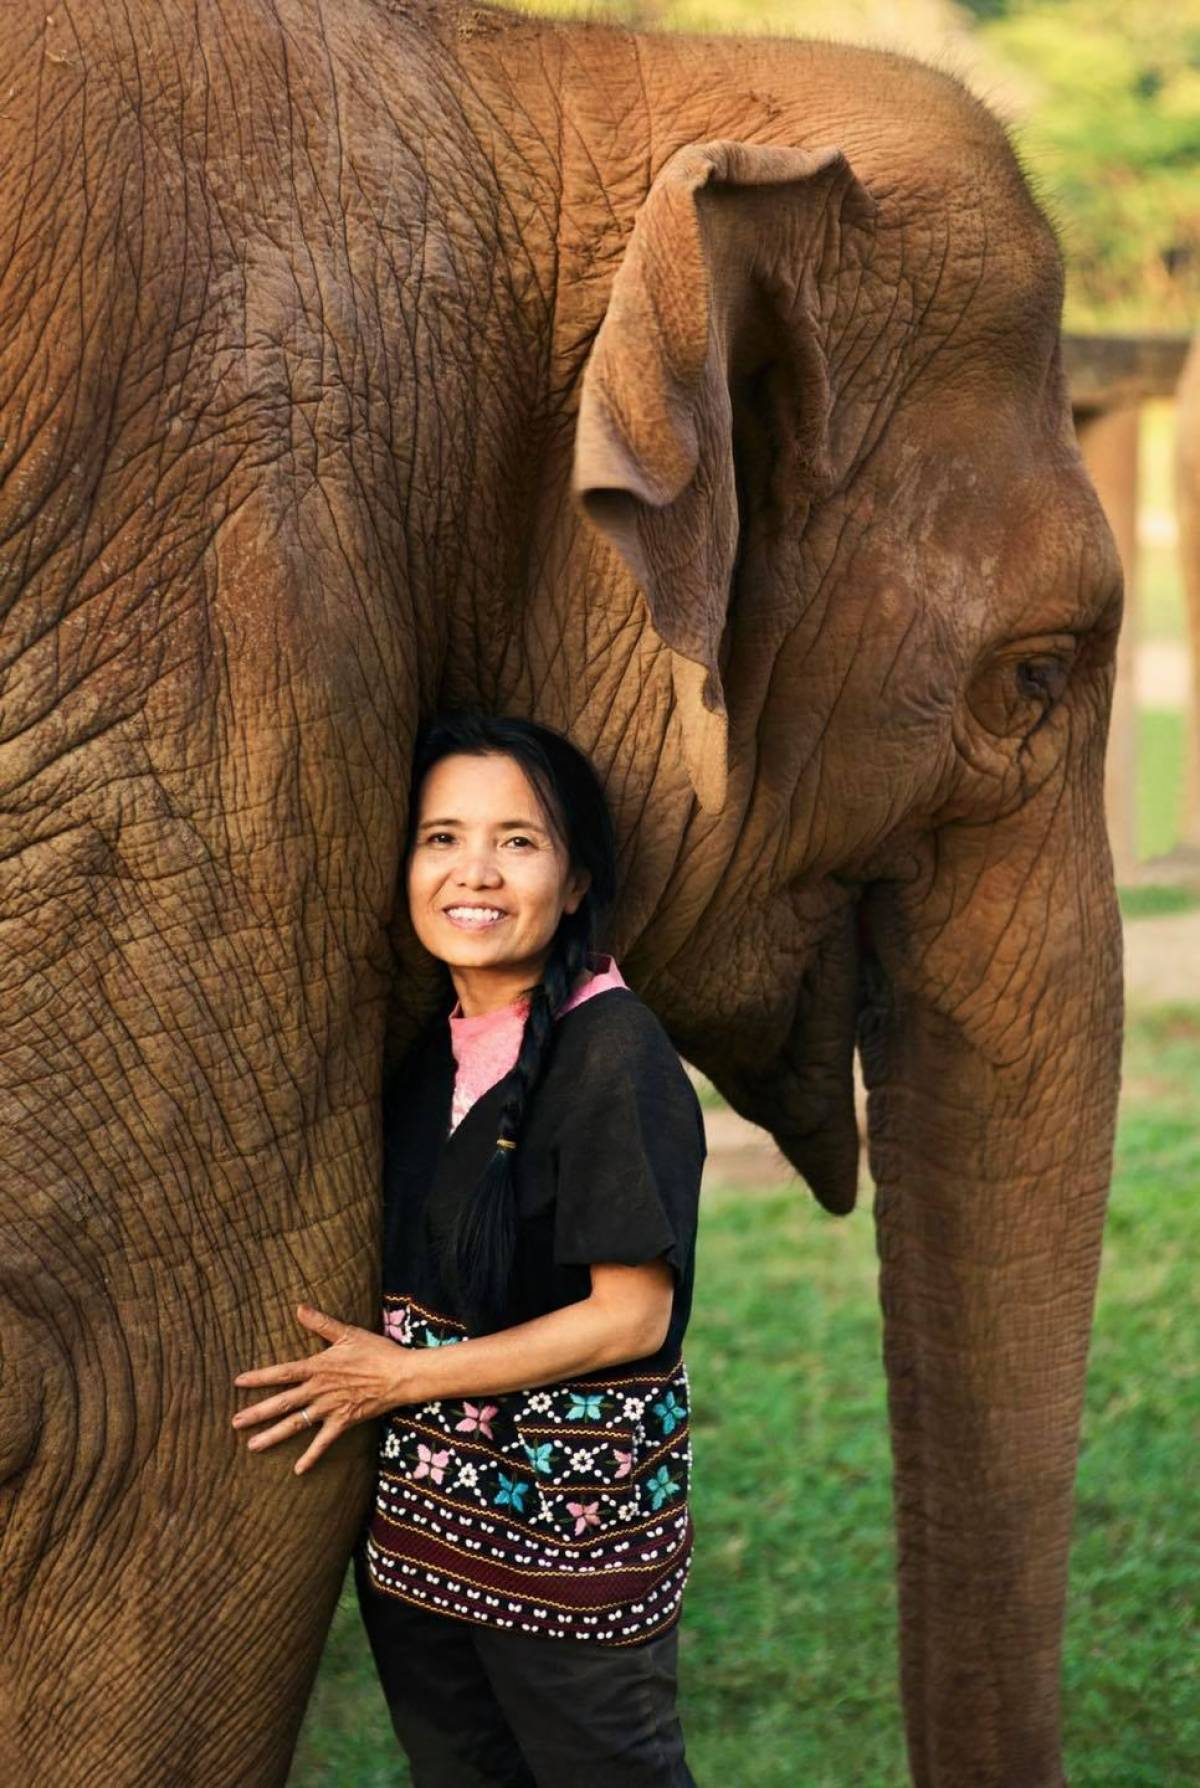 137 Pillars Hotels & Resorts Partners with the Elephant Nature Park Chiang Mai Raising Funds and Awareness for Elephant Conservation and Reforestation